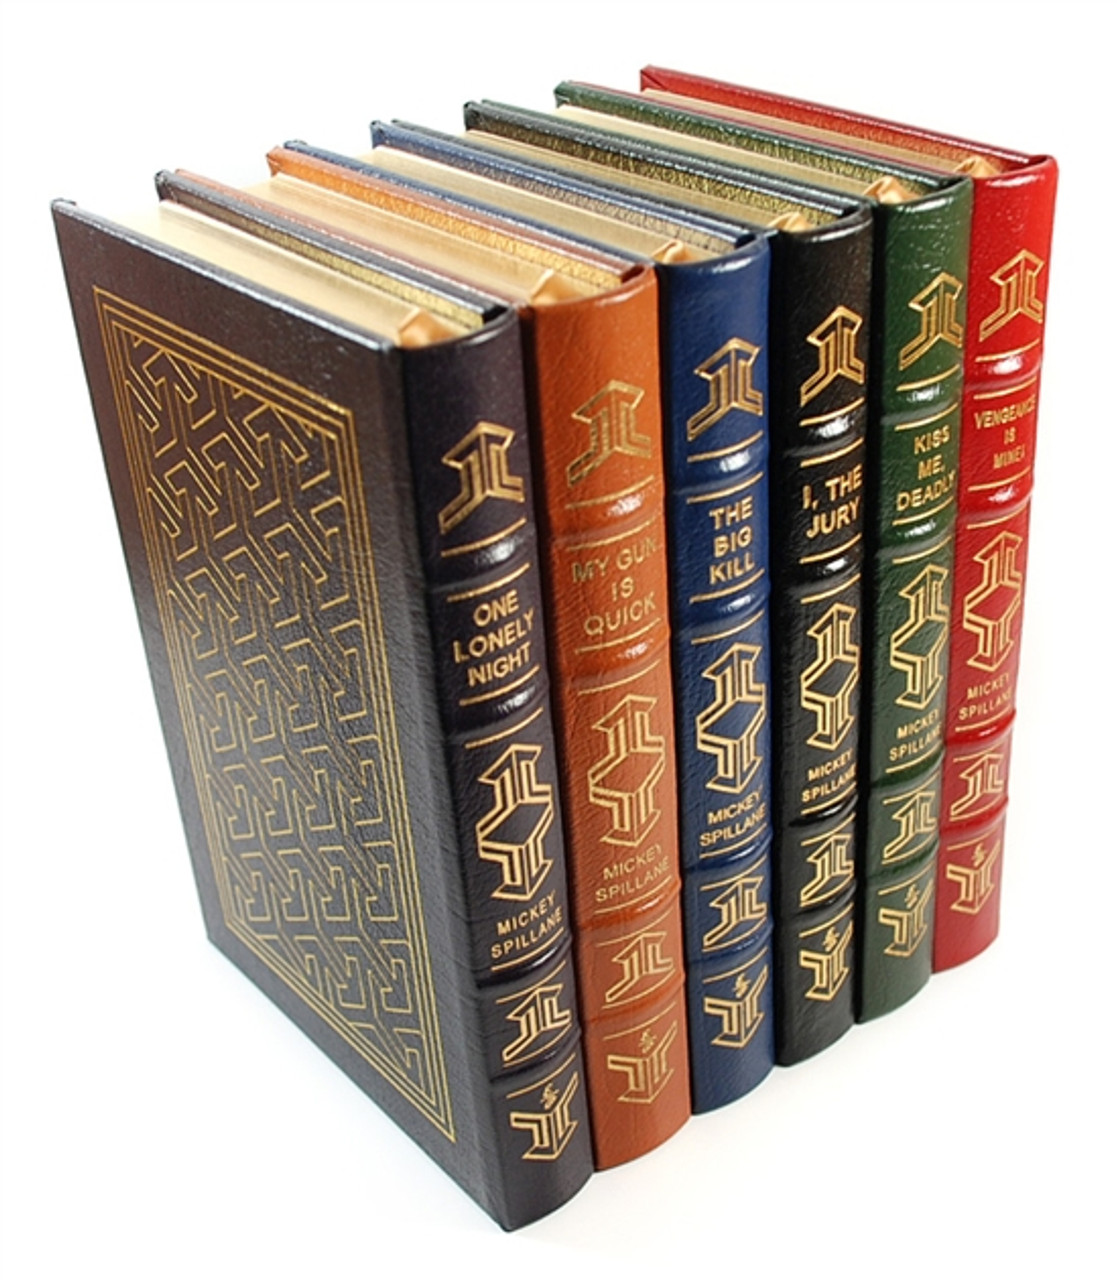 """Easton Press, Mickey Spillane  """"The Mike Hammer Collection"""" Limited Collector's Edition, Complete Matching Set, 6 Vols (Very Fine)"""